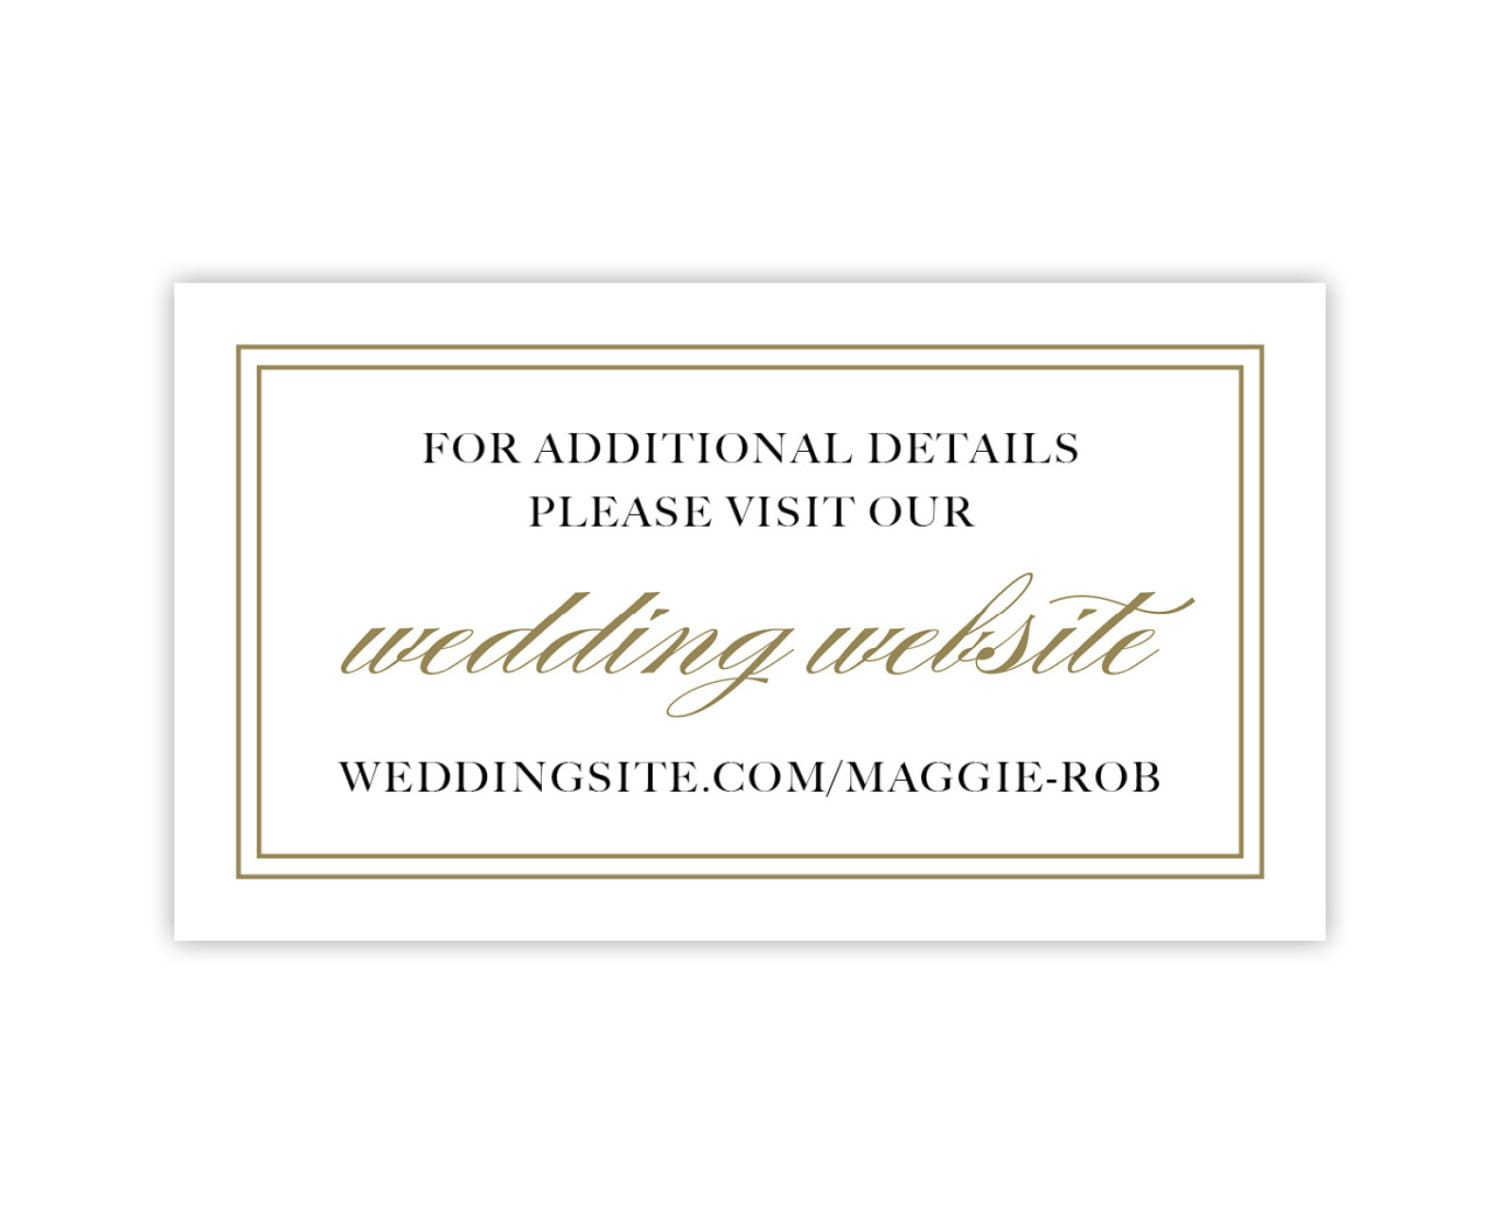 Wedding Gift Registry Website: Wedding Website Cards, Enclosure Cards, Wedding Hashtag